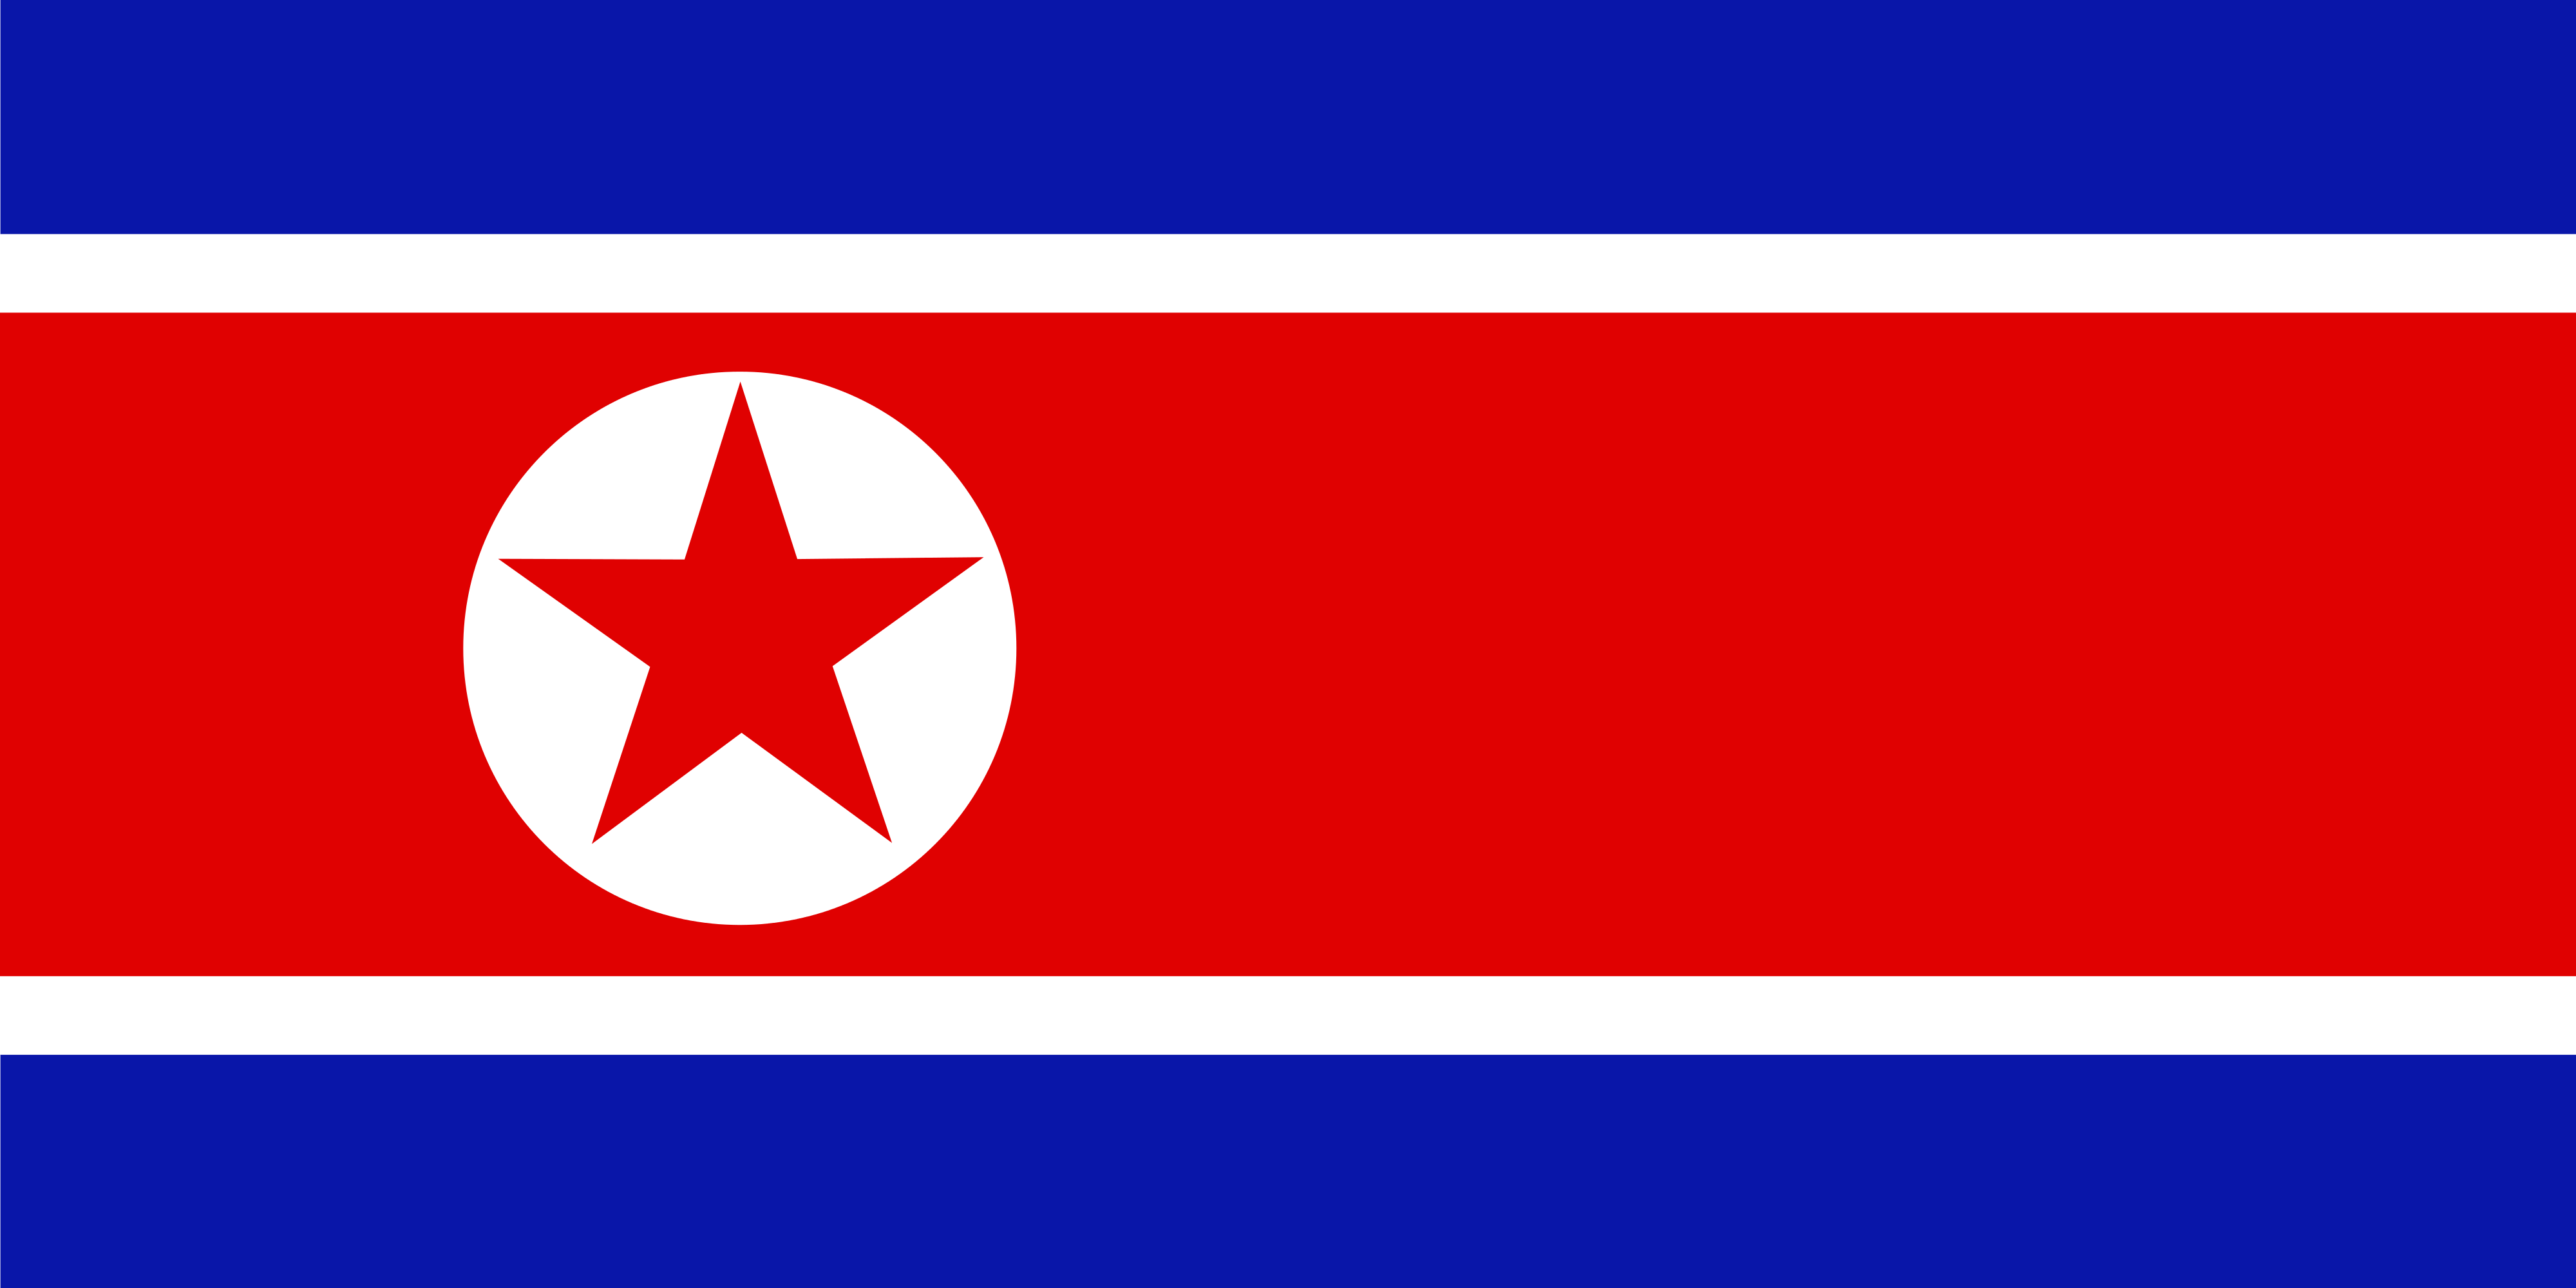 Flag Of North Korea Or Democratic People S Republic Dprk Clipart